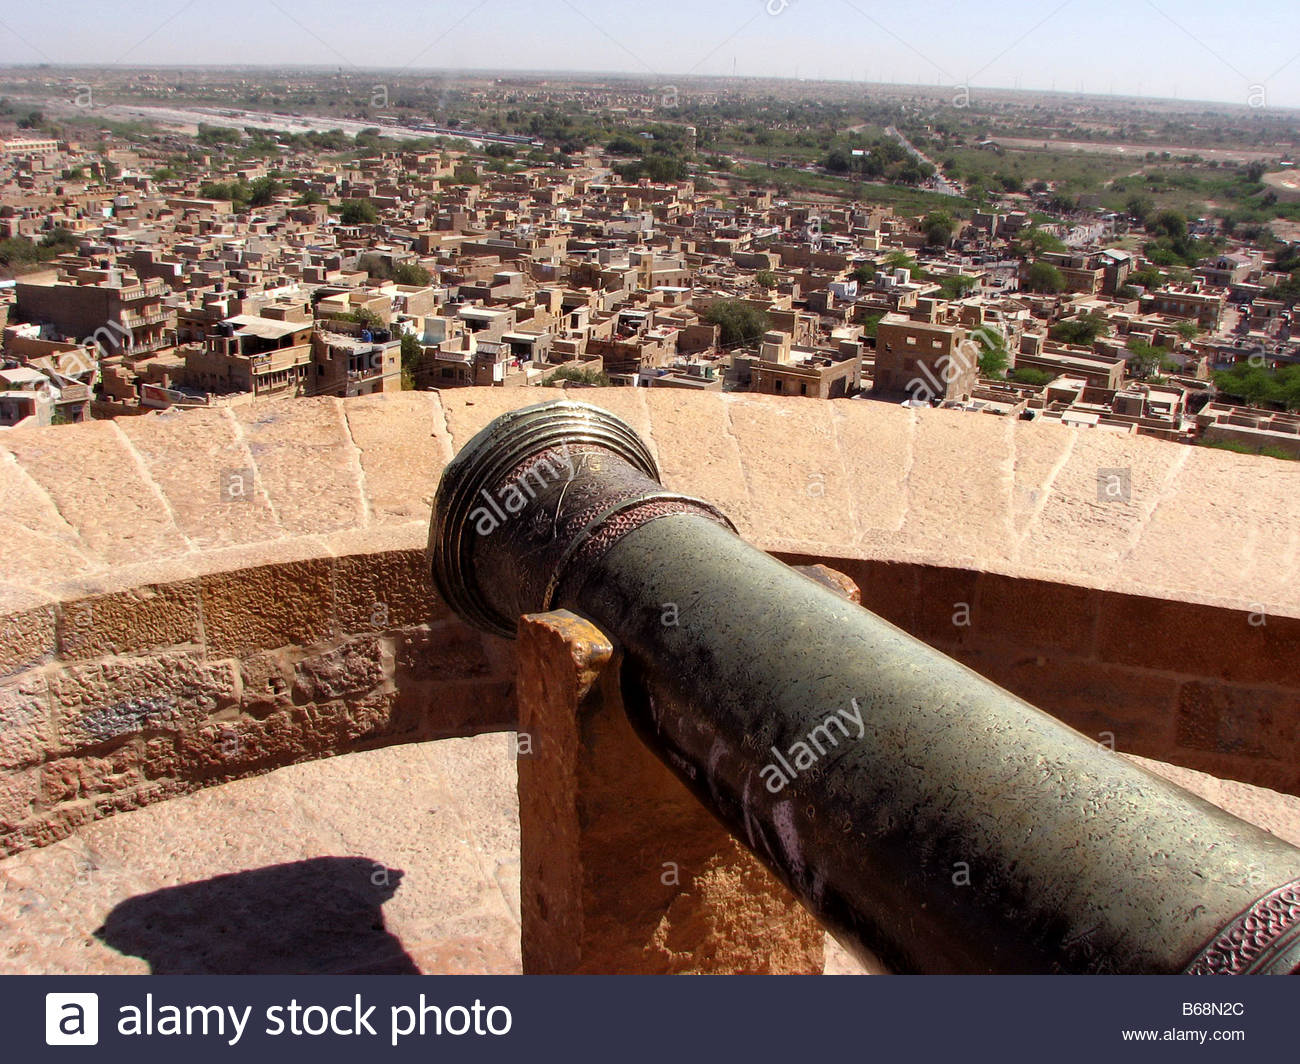 CANNON ON THE RAMPARTS OF JAISALMER FORT RAJASTHAN INDIA - Stock Image